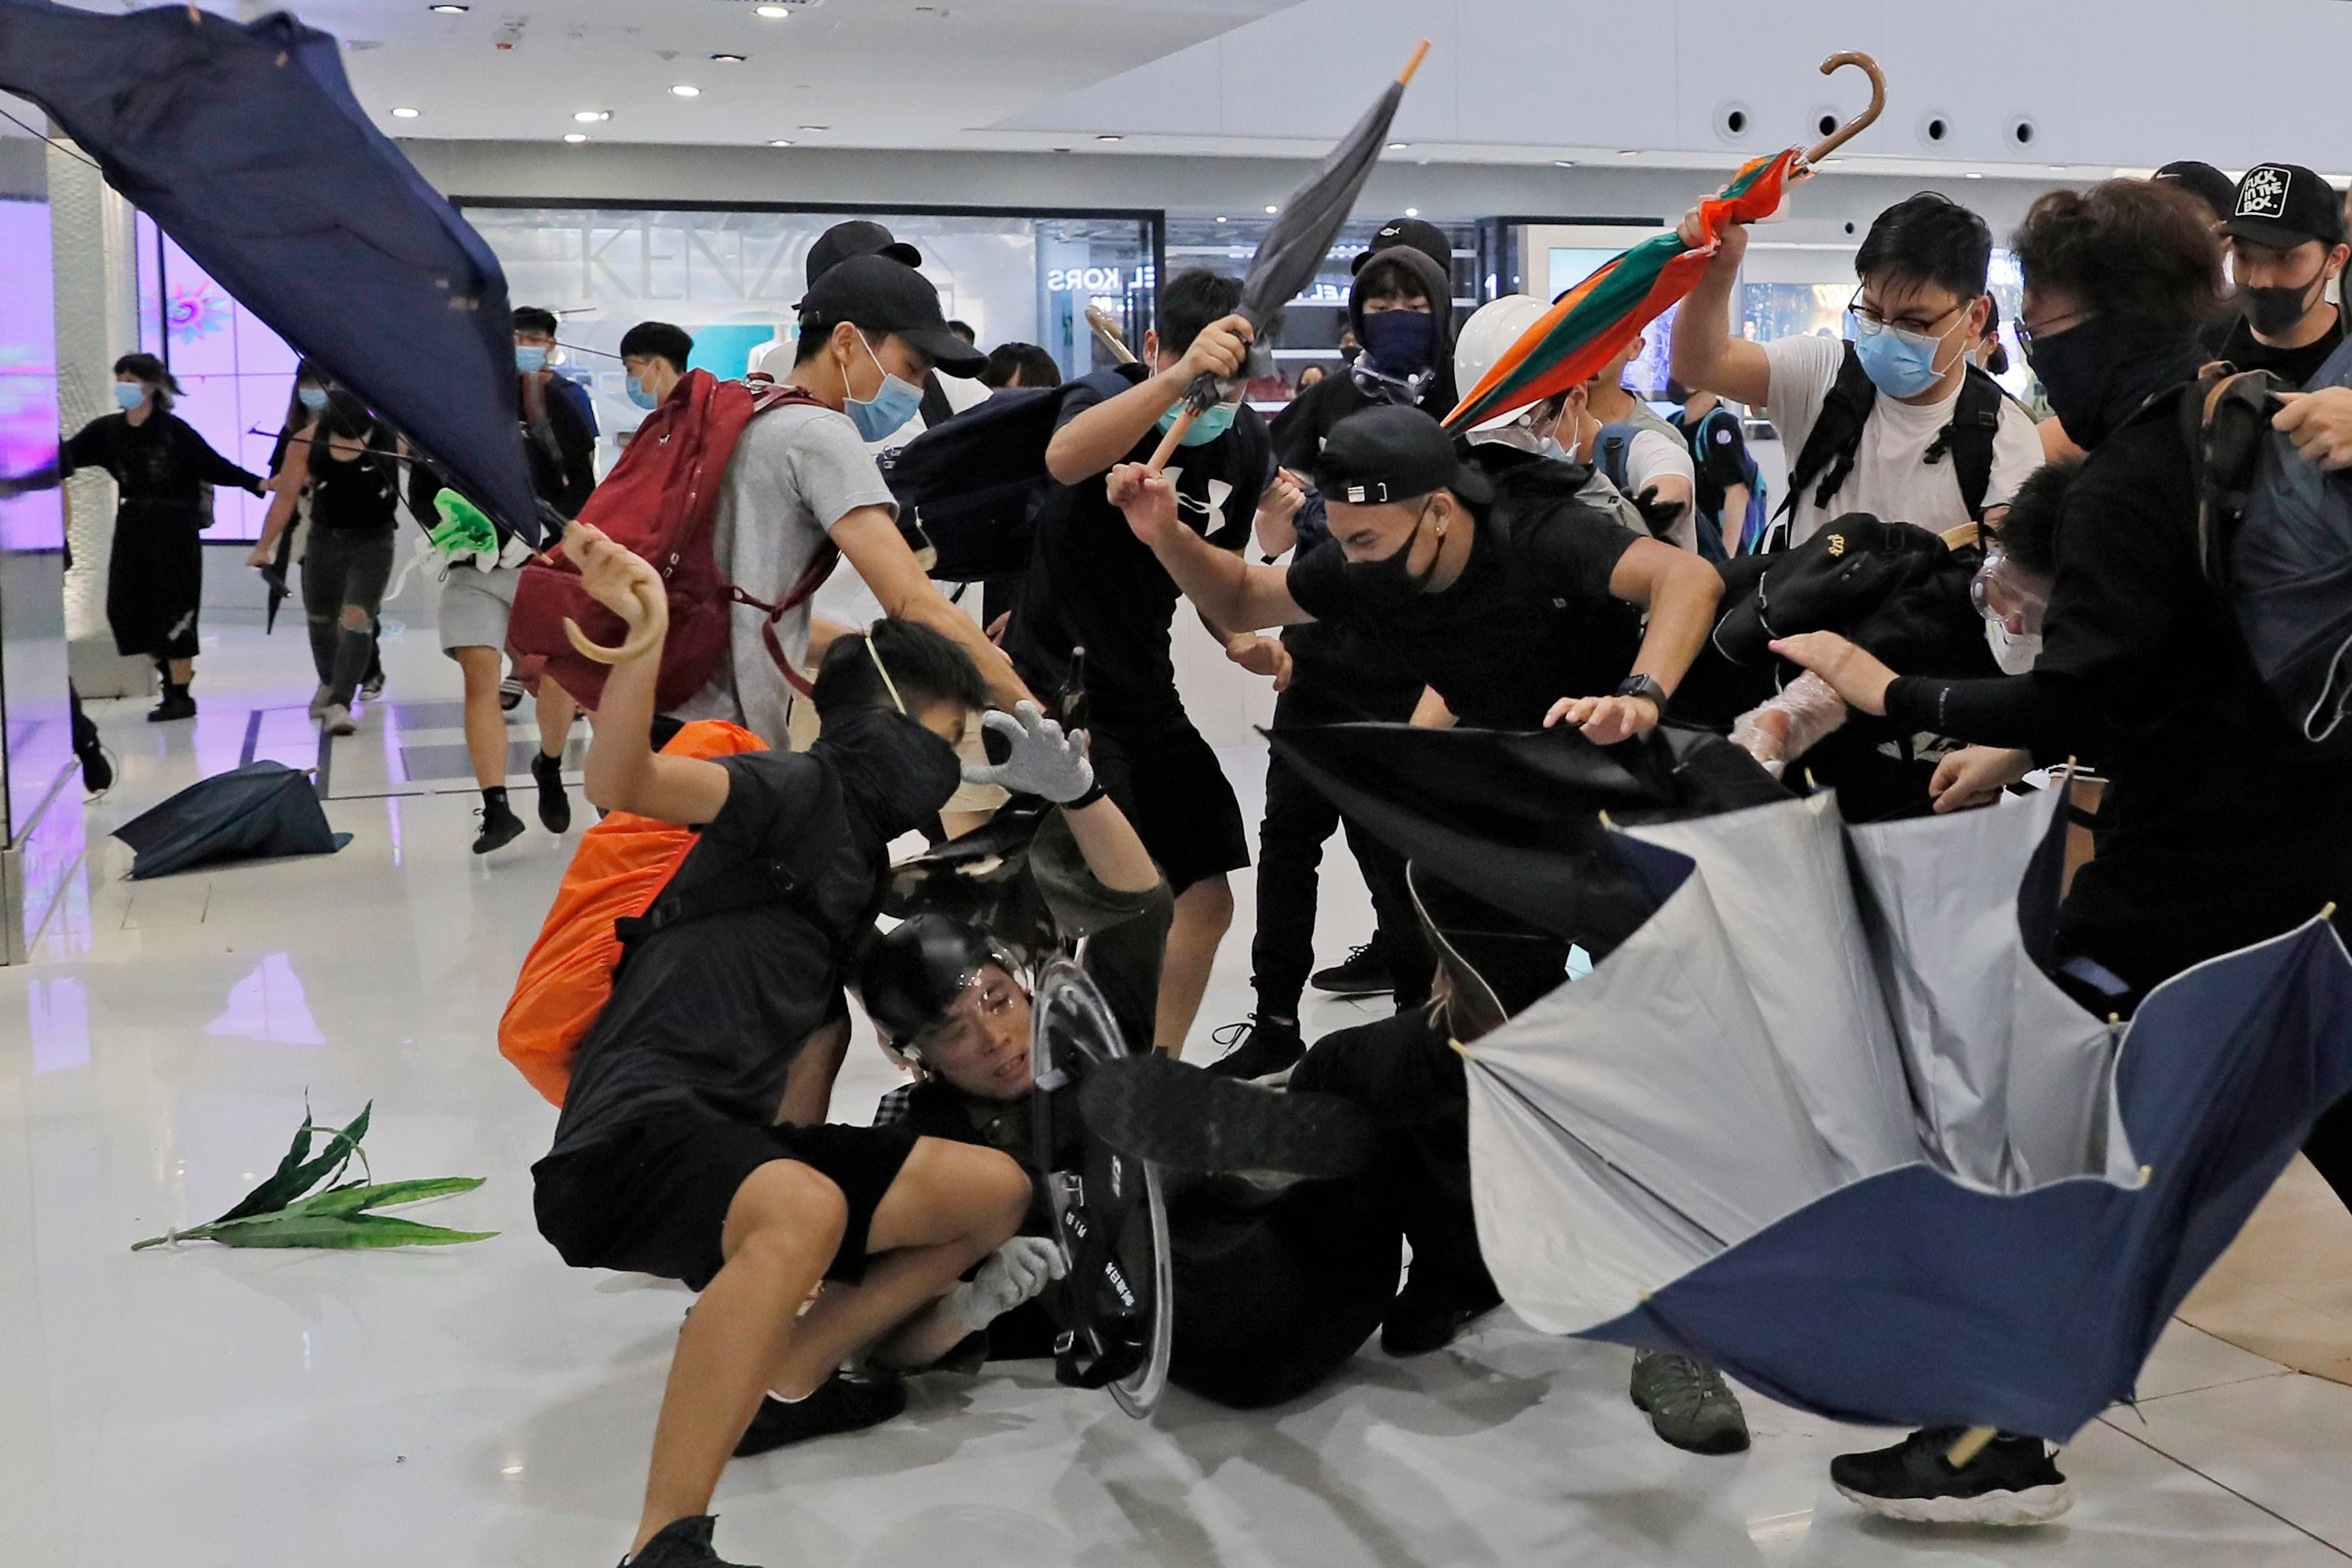 Violent clashes between police and protesters occurred last weekend inside Sha Tin's New Town Plaza mall.